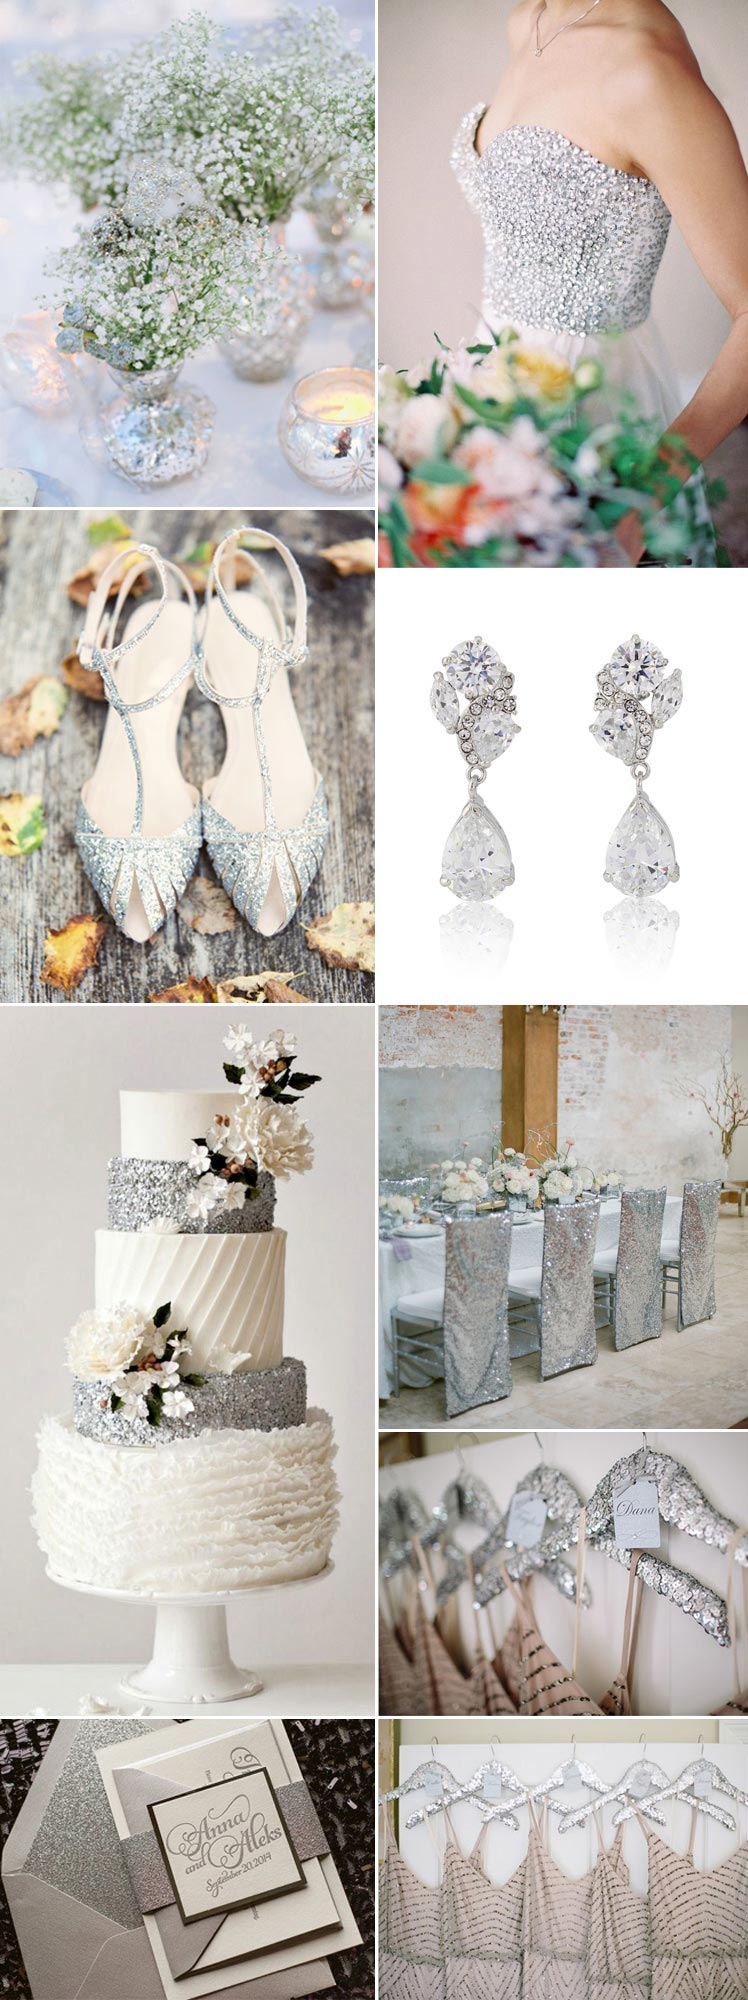 a sparkling diamond wedding theme